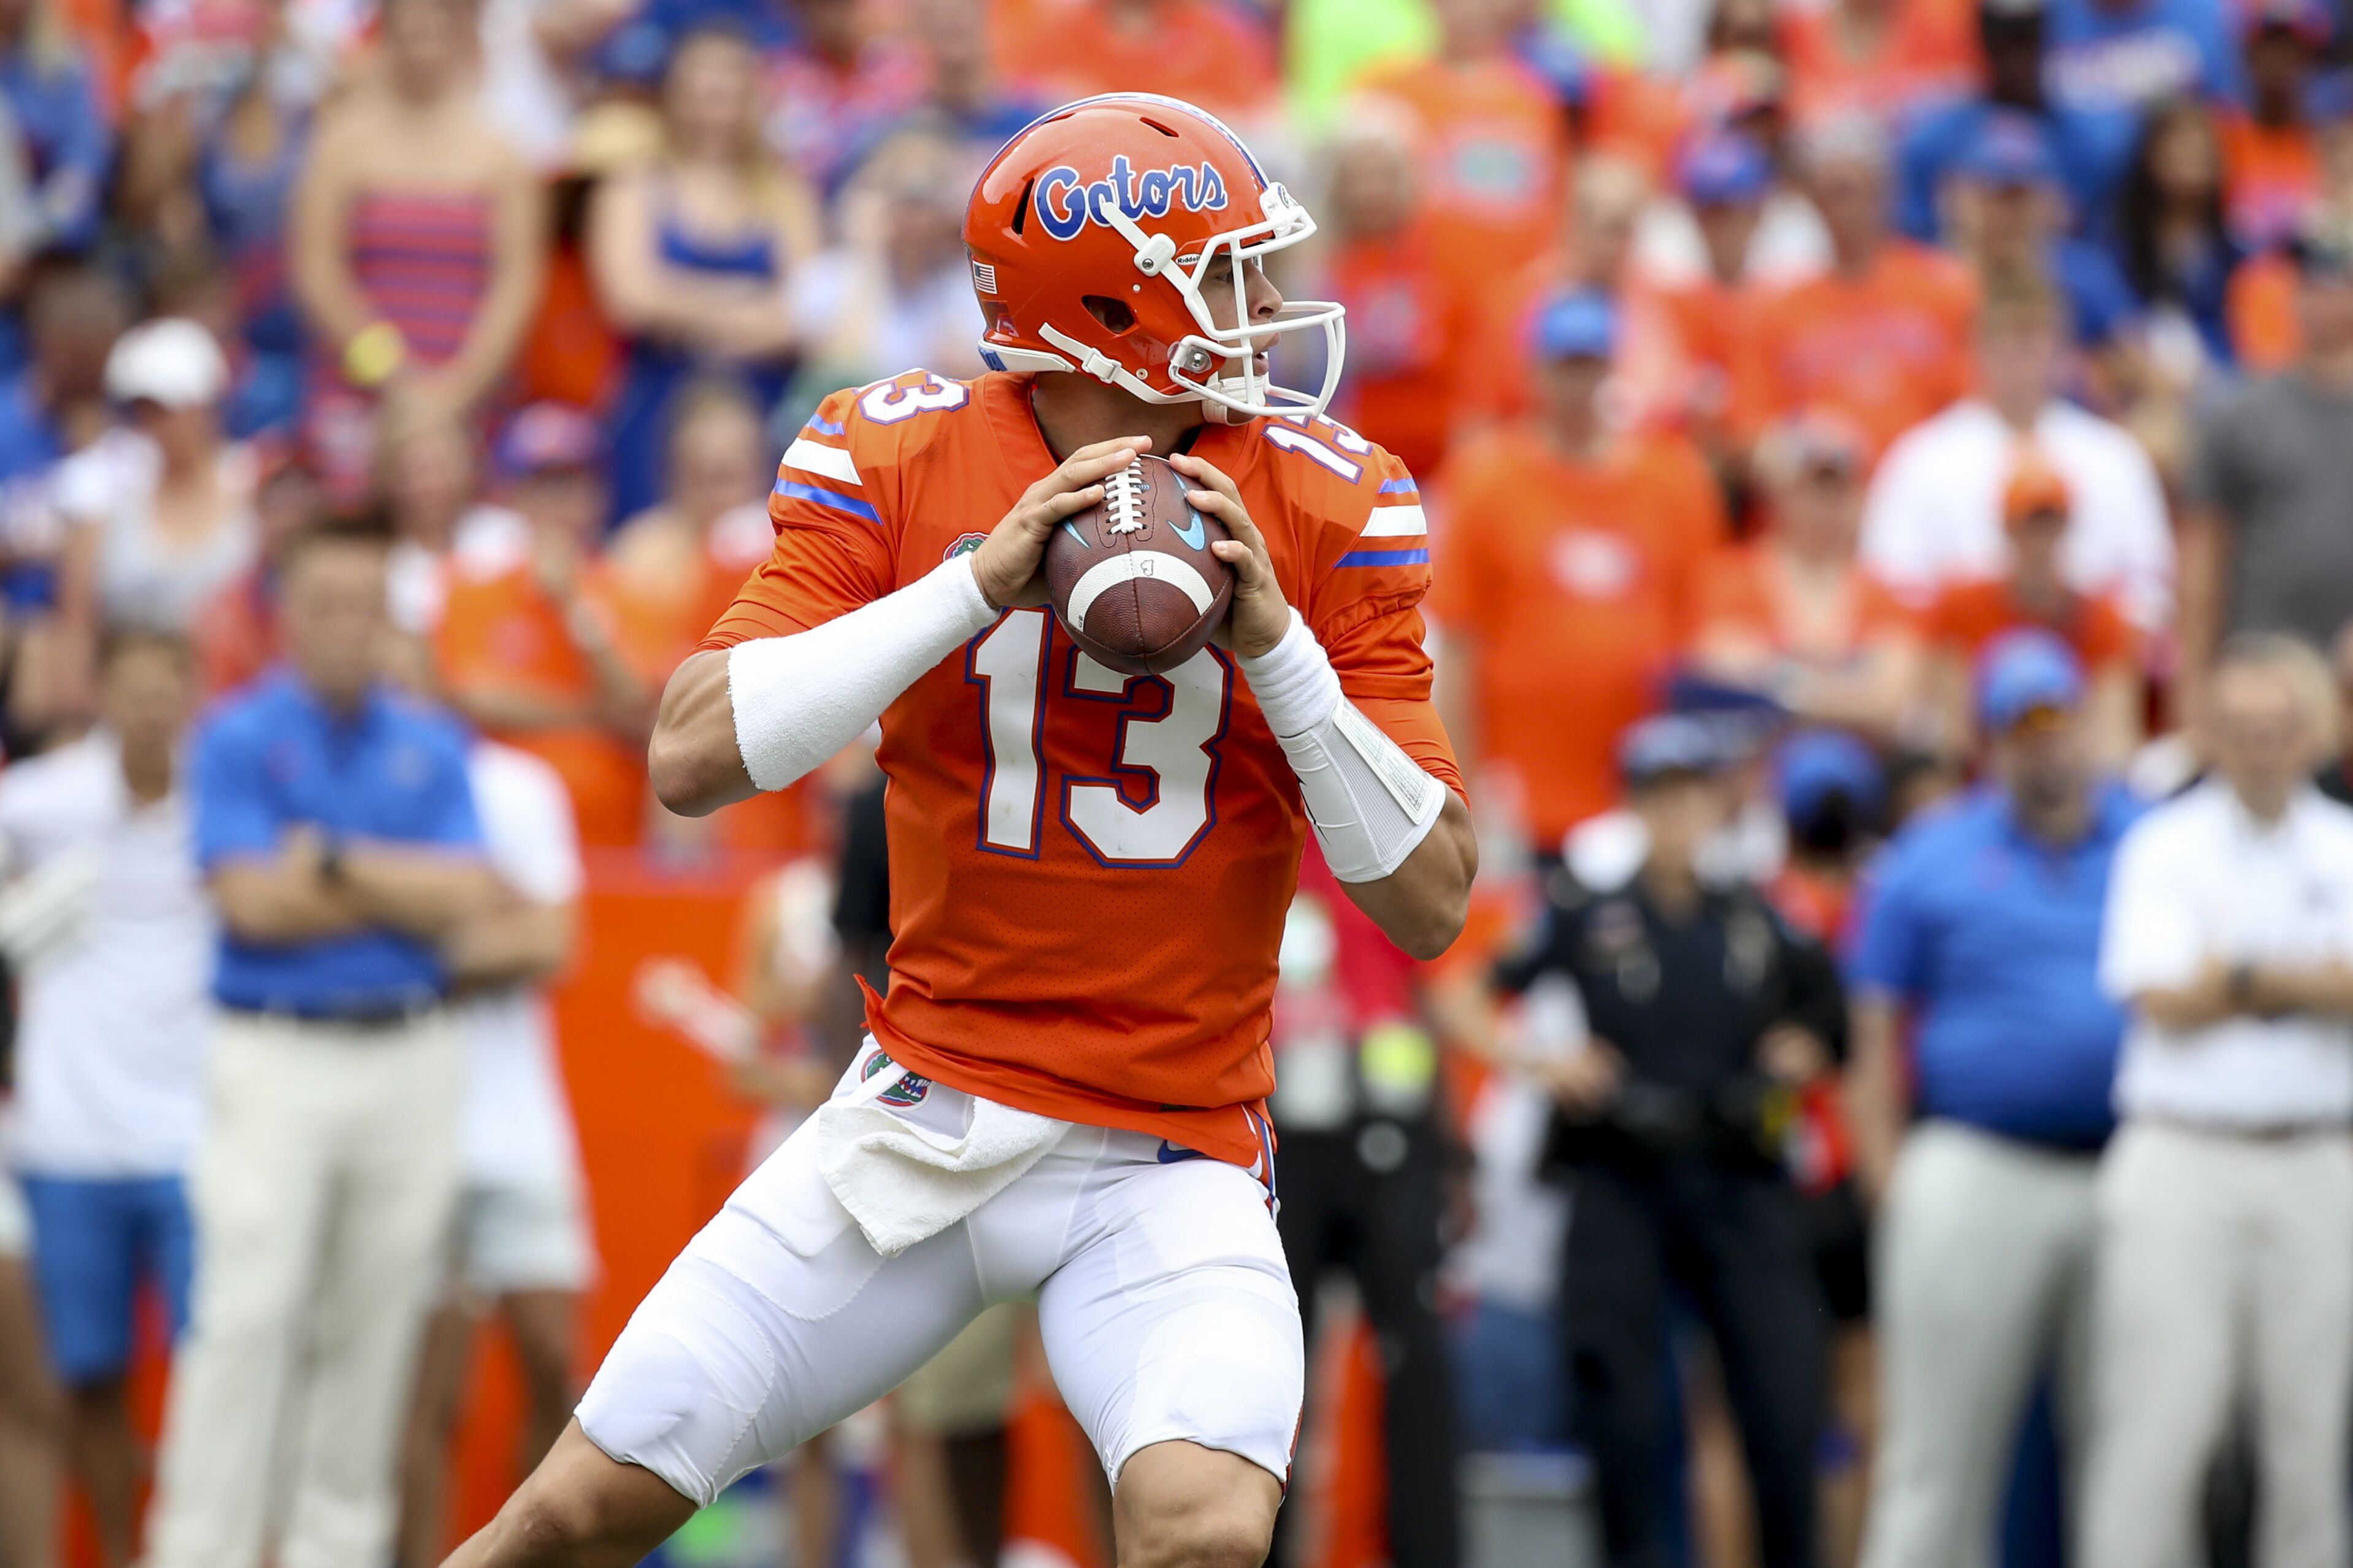 Florida Football: Is Feleipe Franks a Heisman-caliber quarterback?